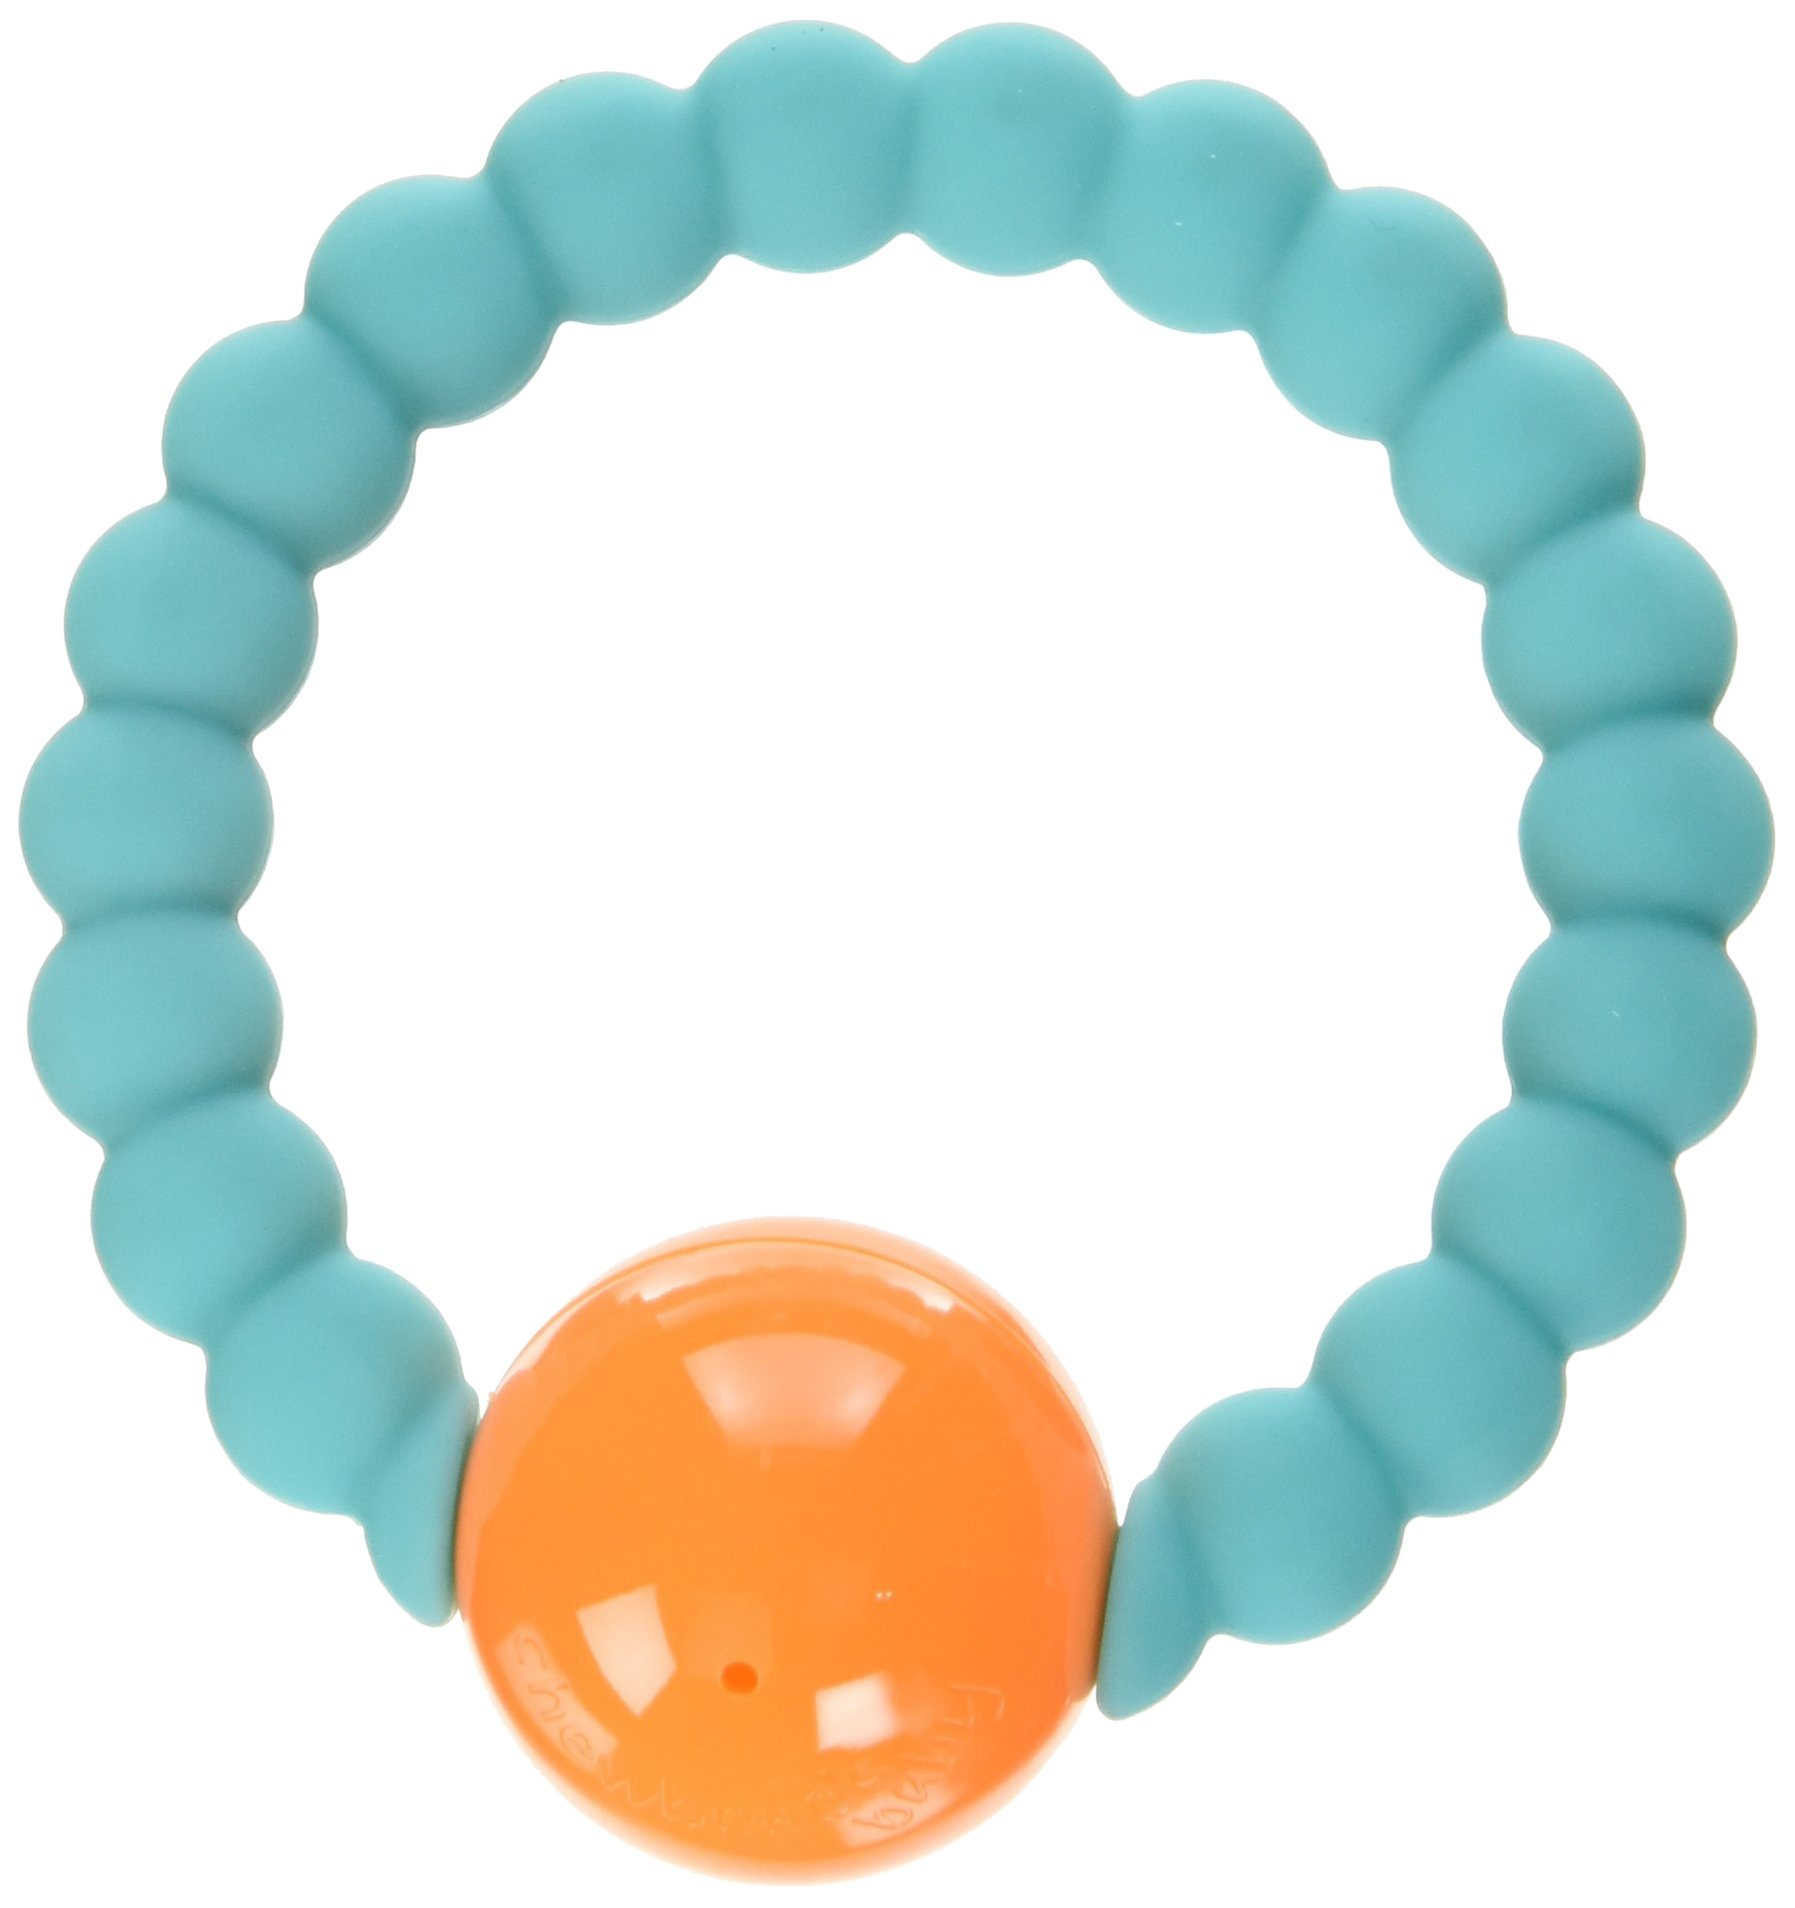 Chewbeads Mercer Rattle - Turquoise